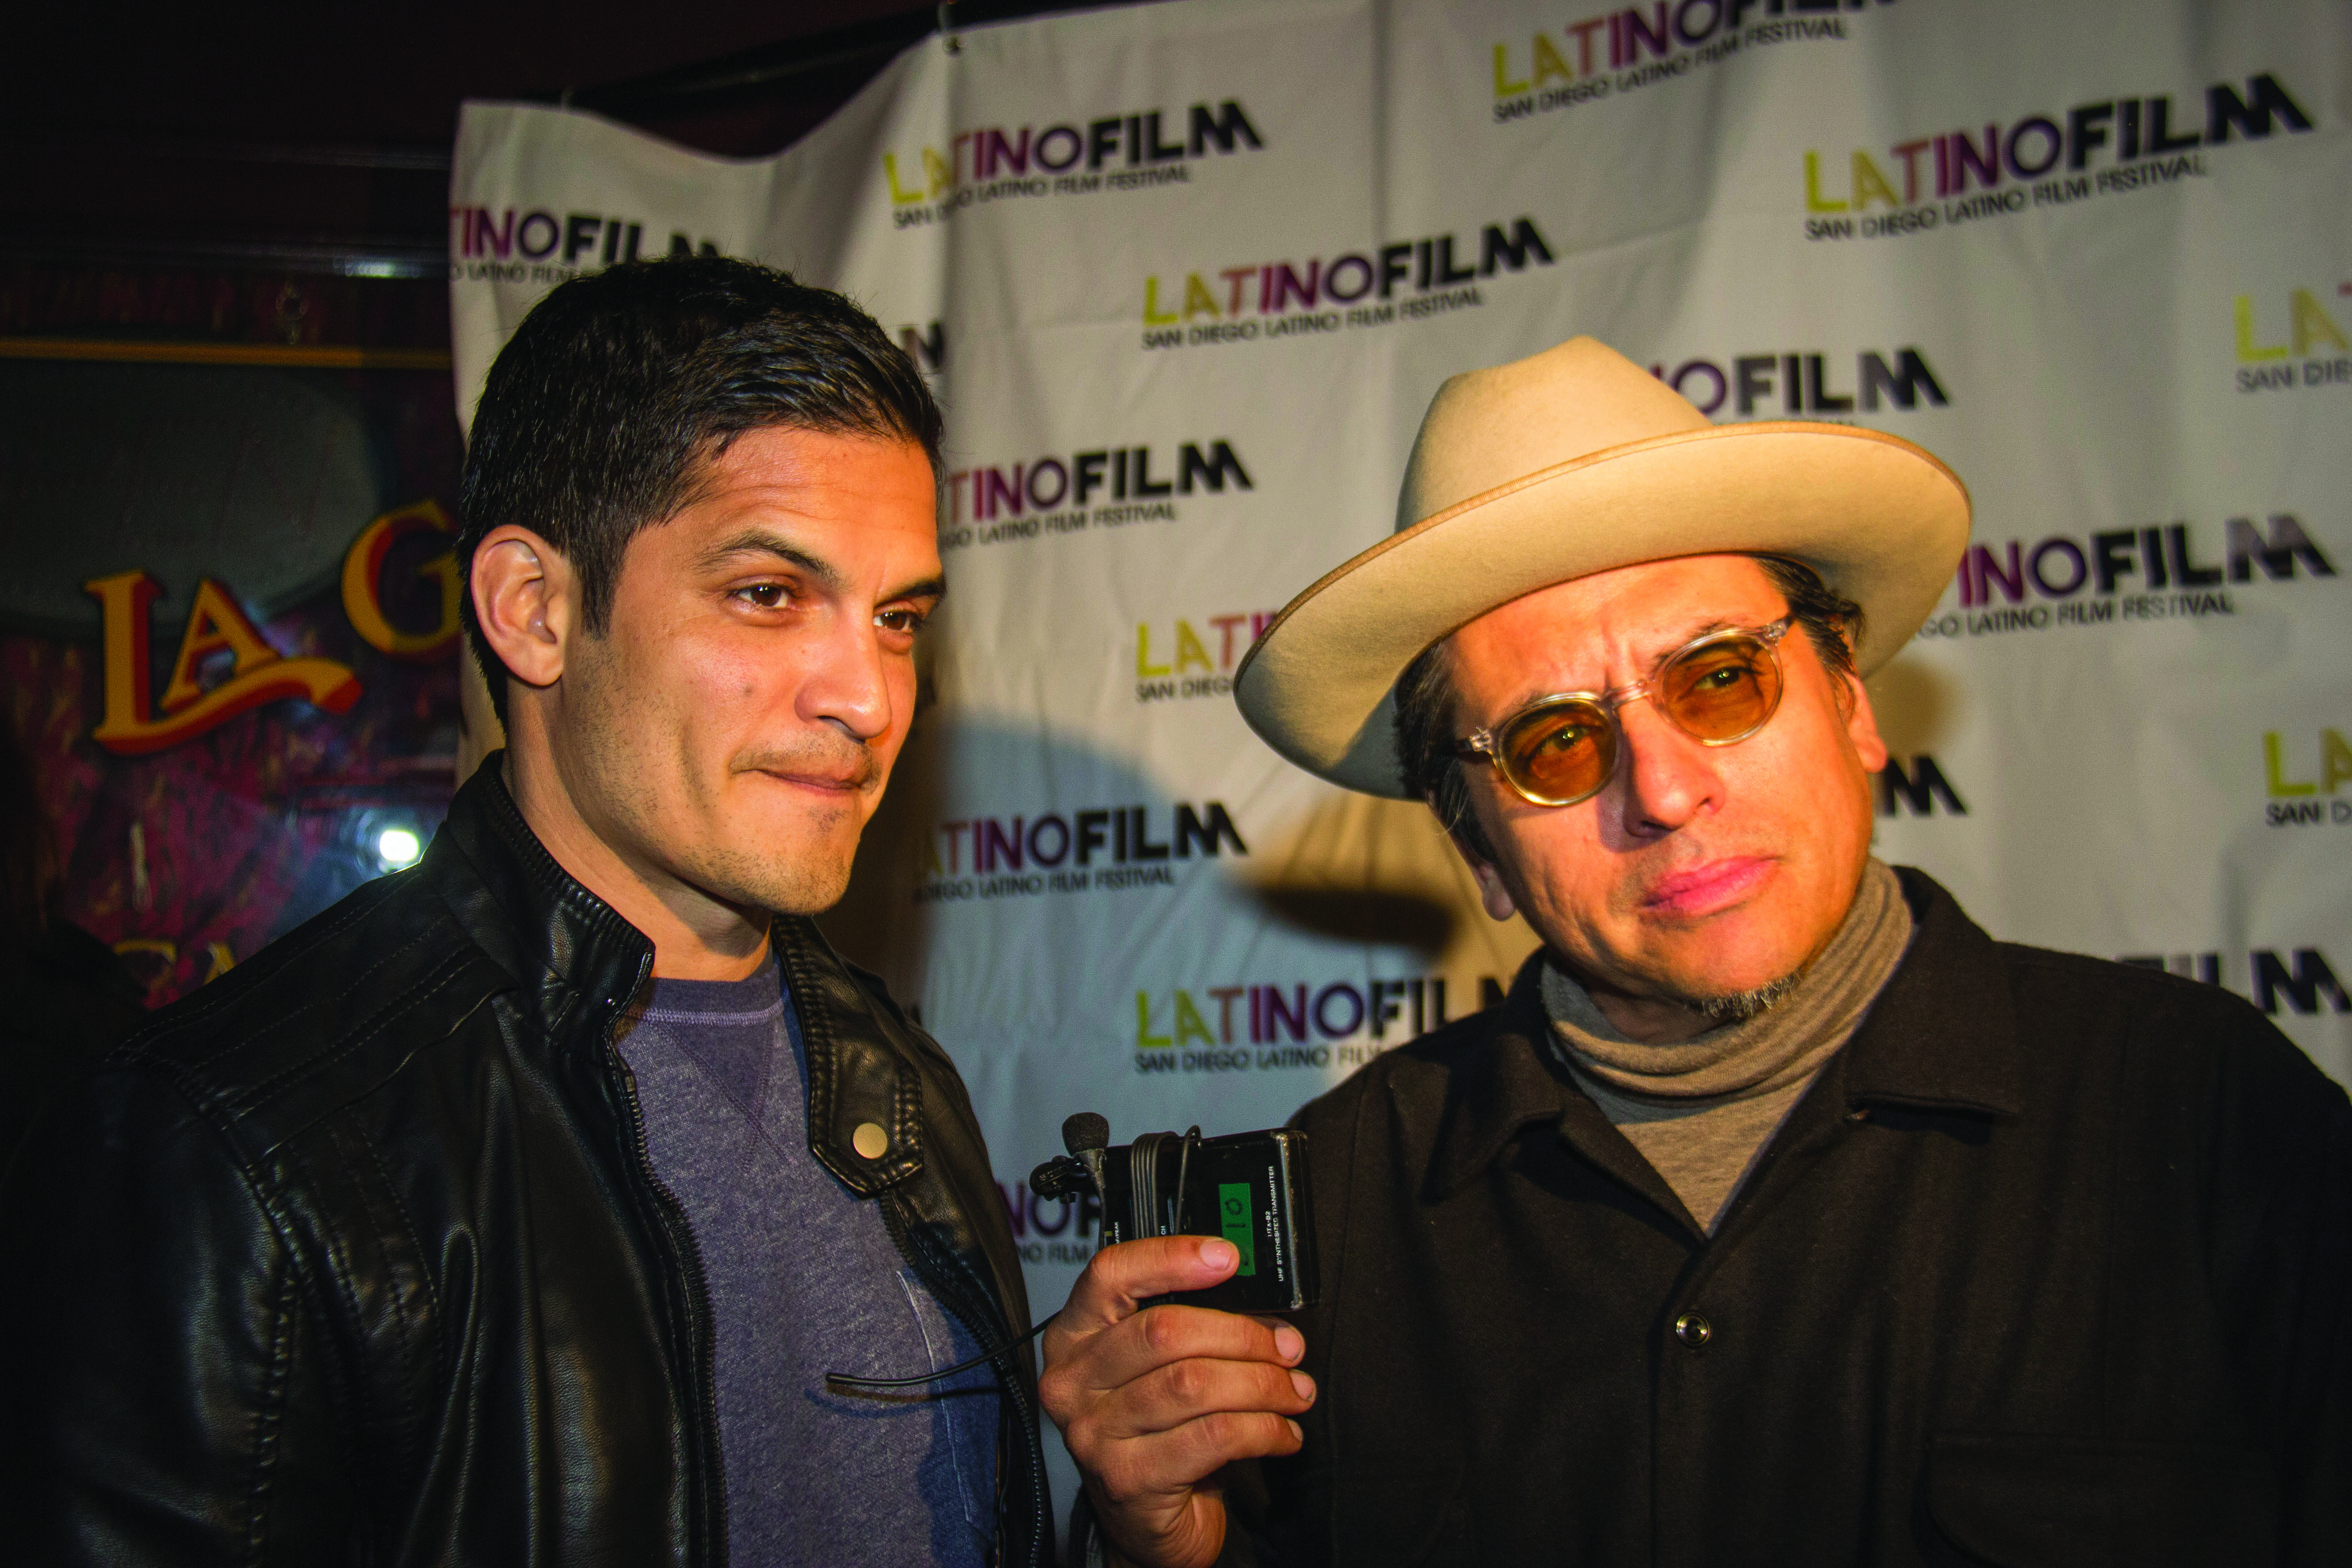 Richard Montoya, right, with actor Nick Gonzalez speaking about the film